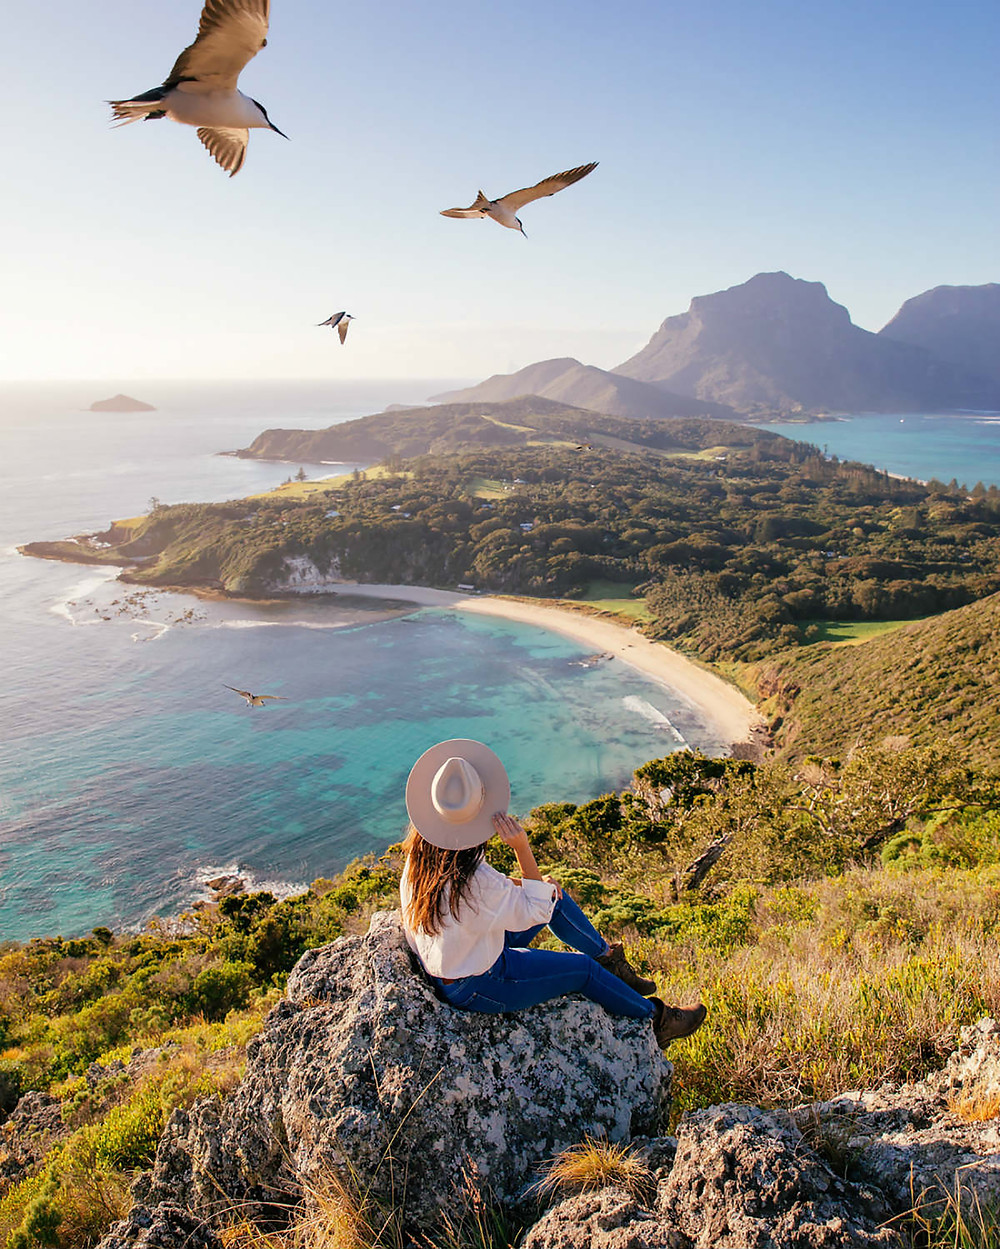 Brilliant Travel of Wauchope, Tourism, Lord Howe Island, feature story by Brilliant - Online